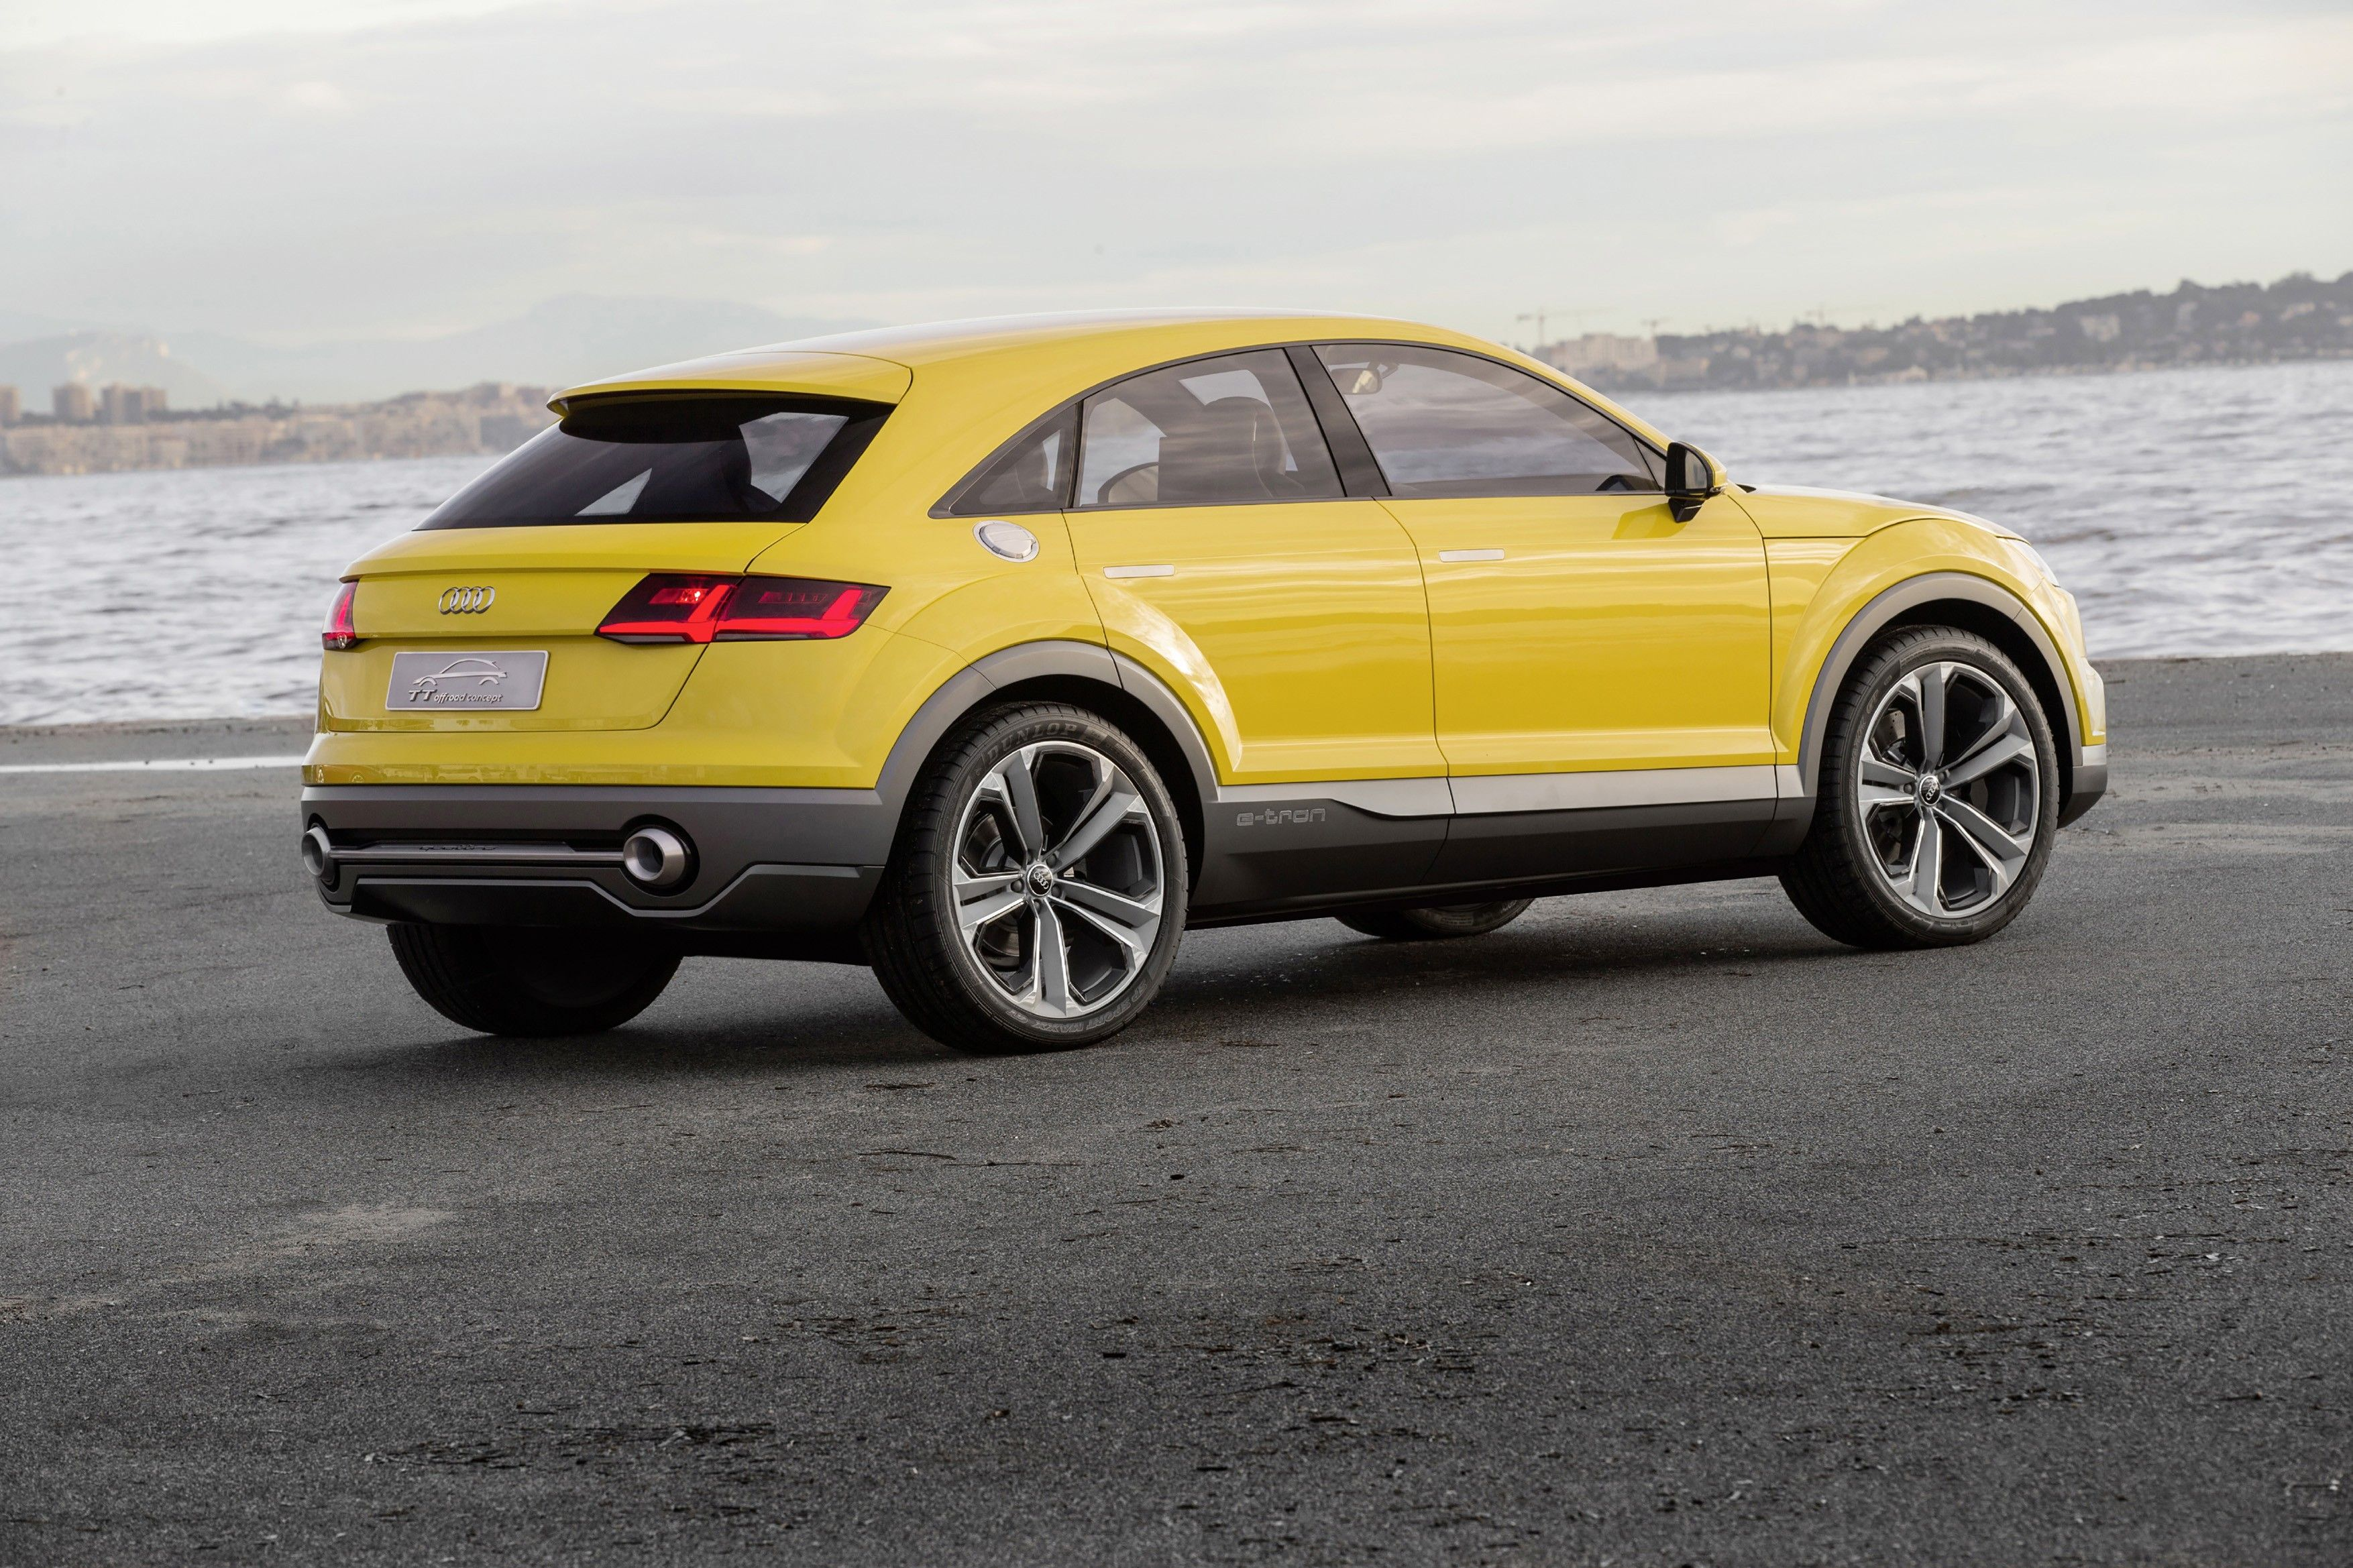 Audi To Launch Ttq Offroader In 2017 Due Fight With Fiat Over Q4